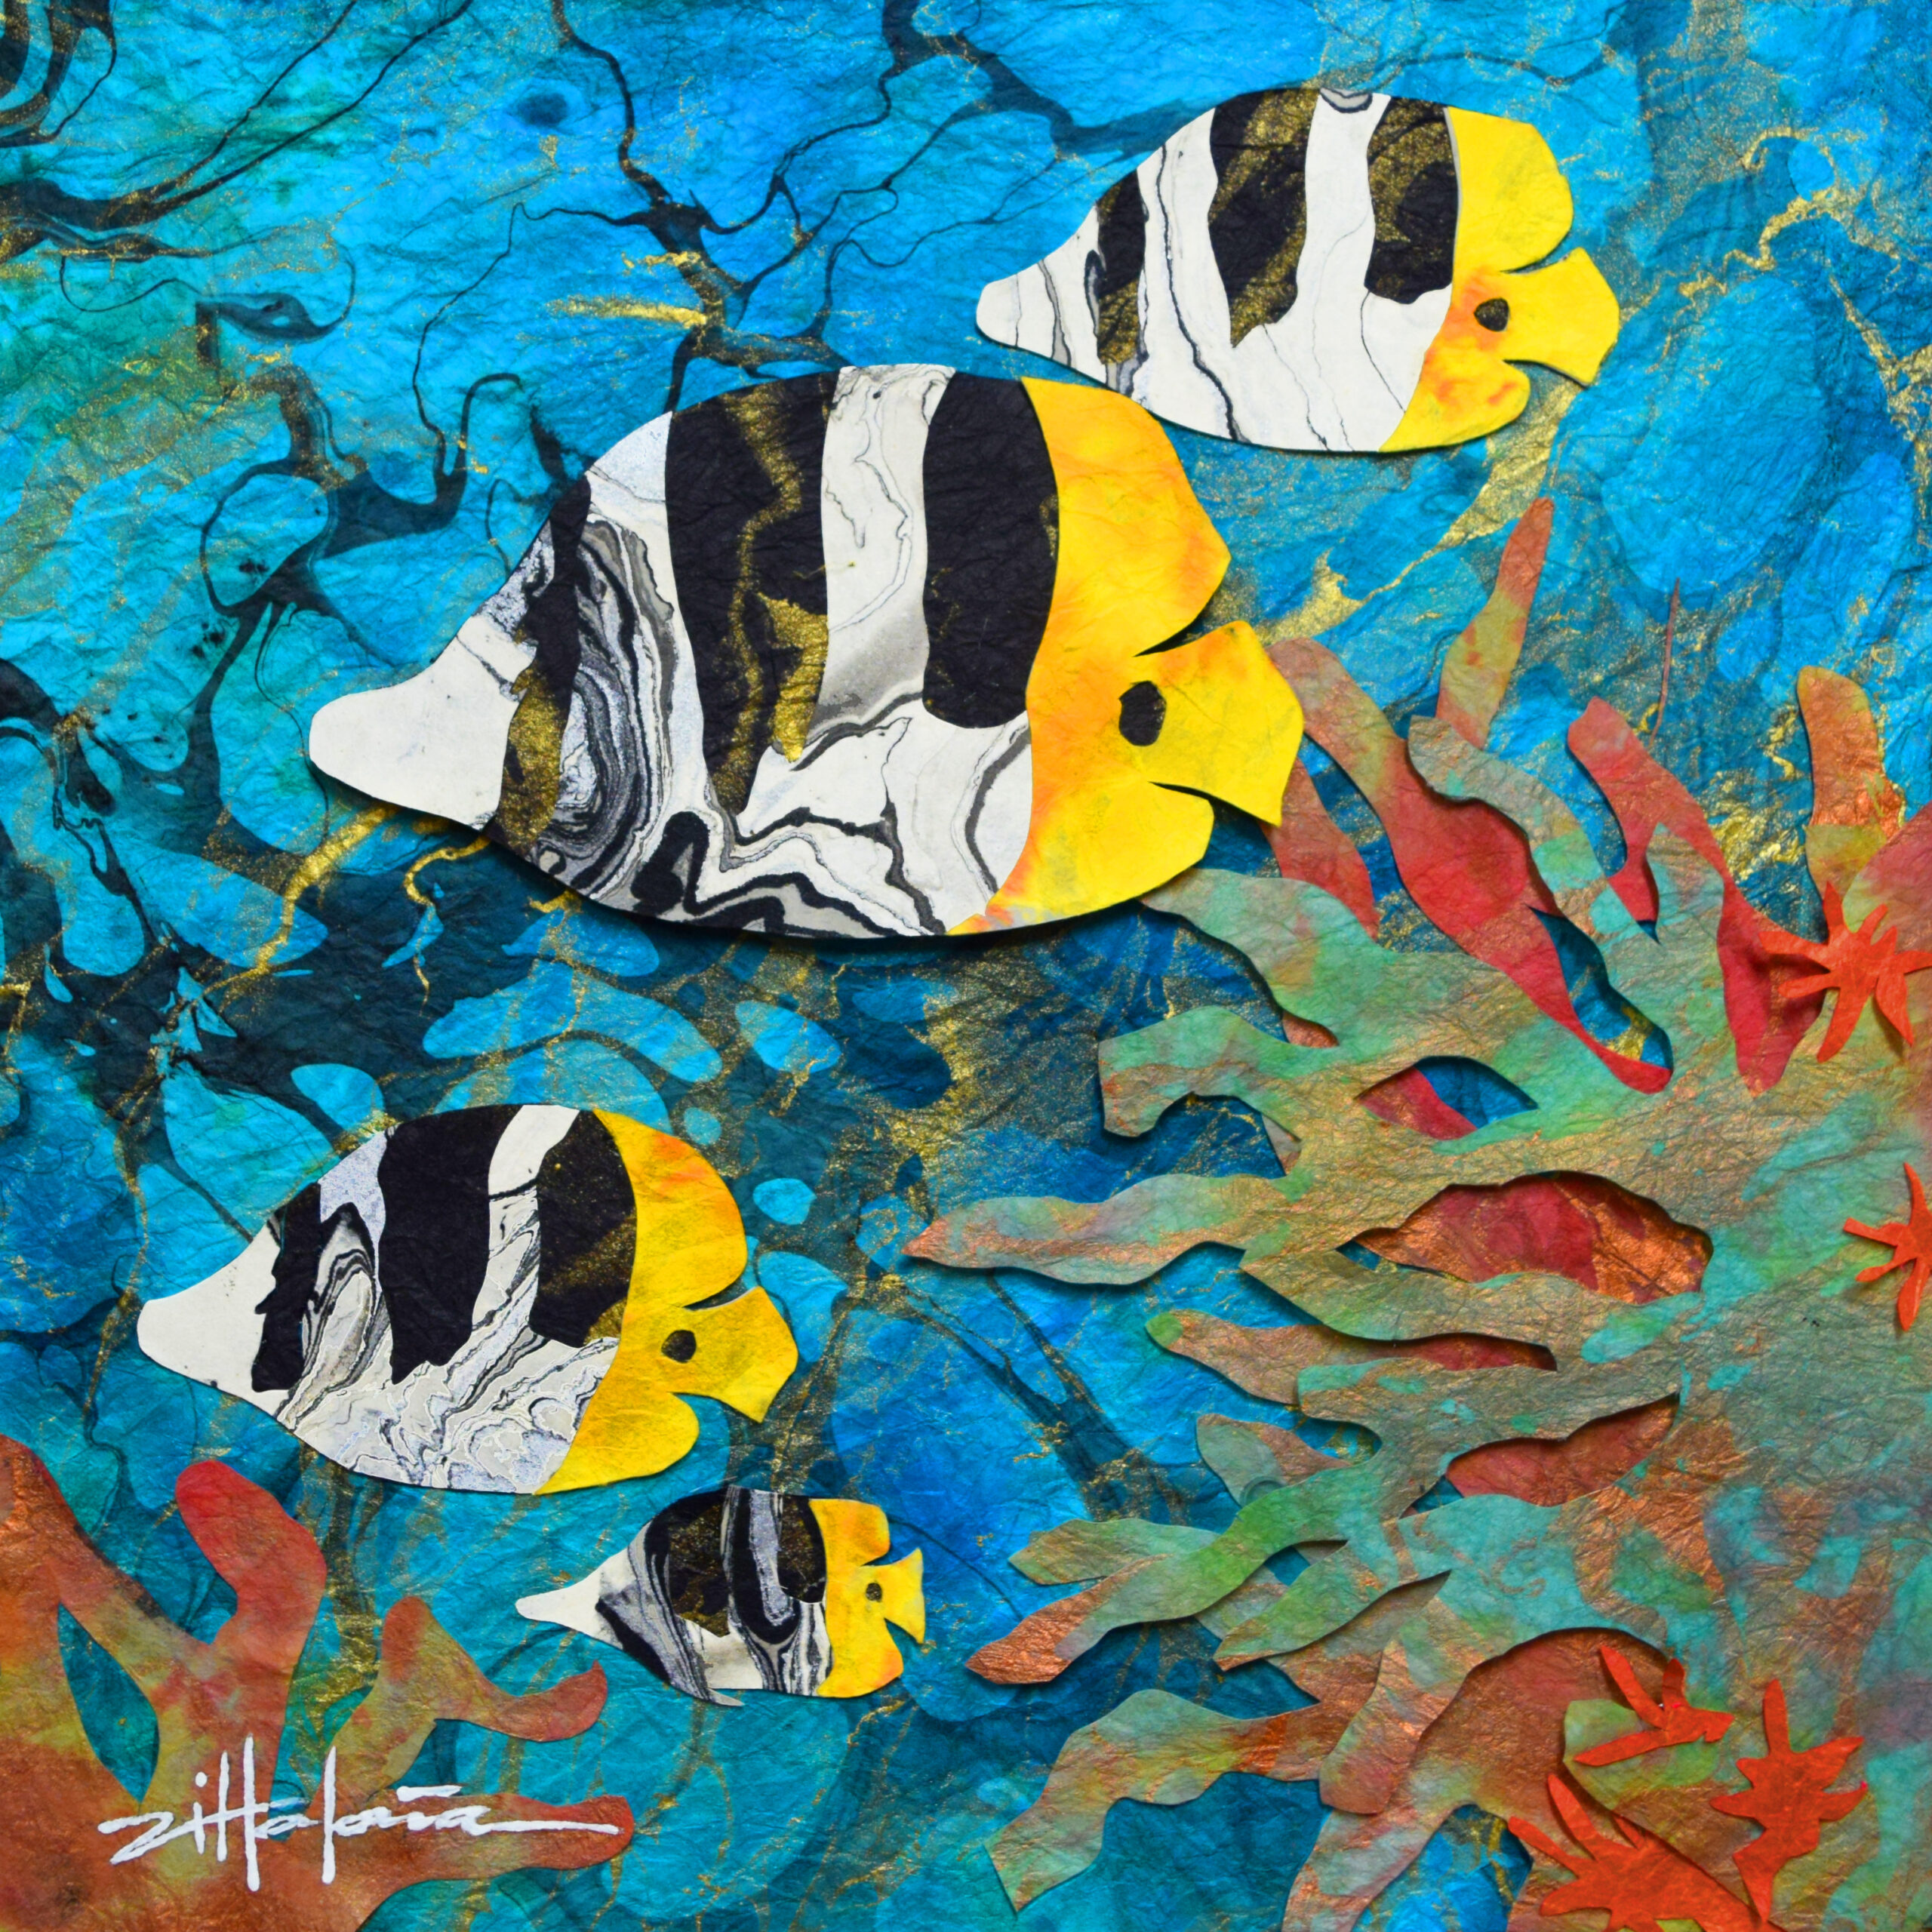 Even Butterflies Swim - Ocean Butterflies by Marcy Ann Villafana